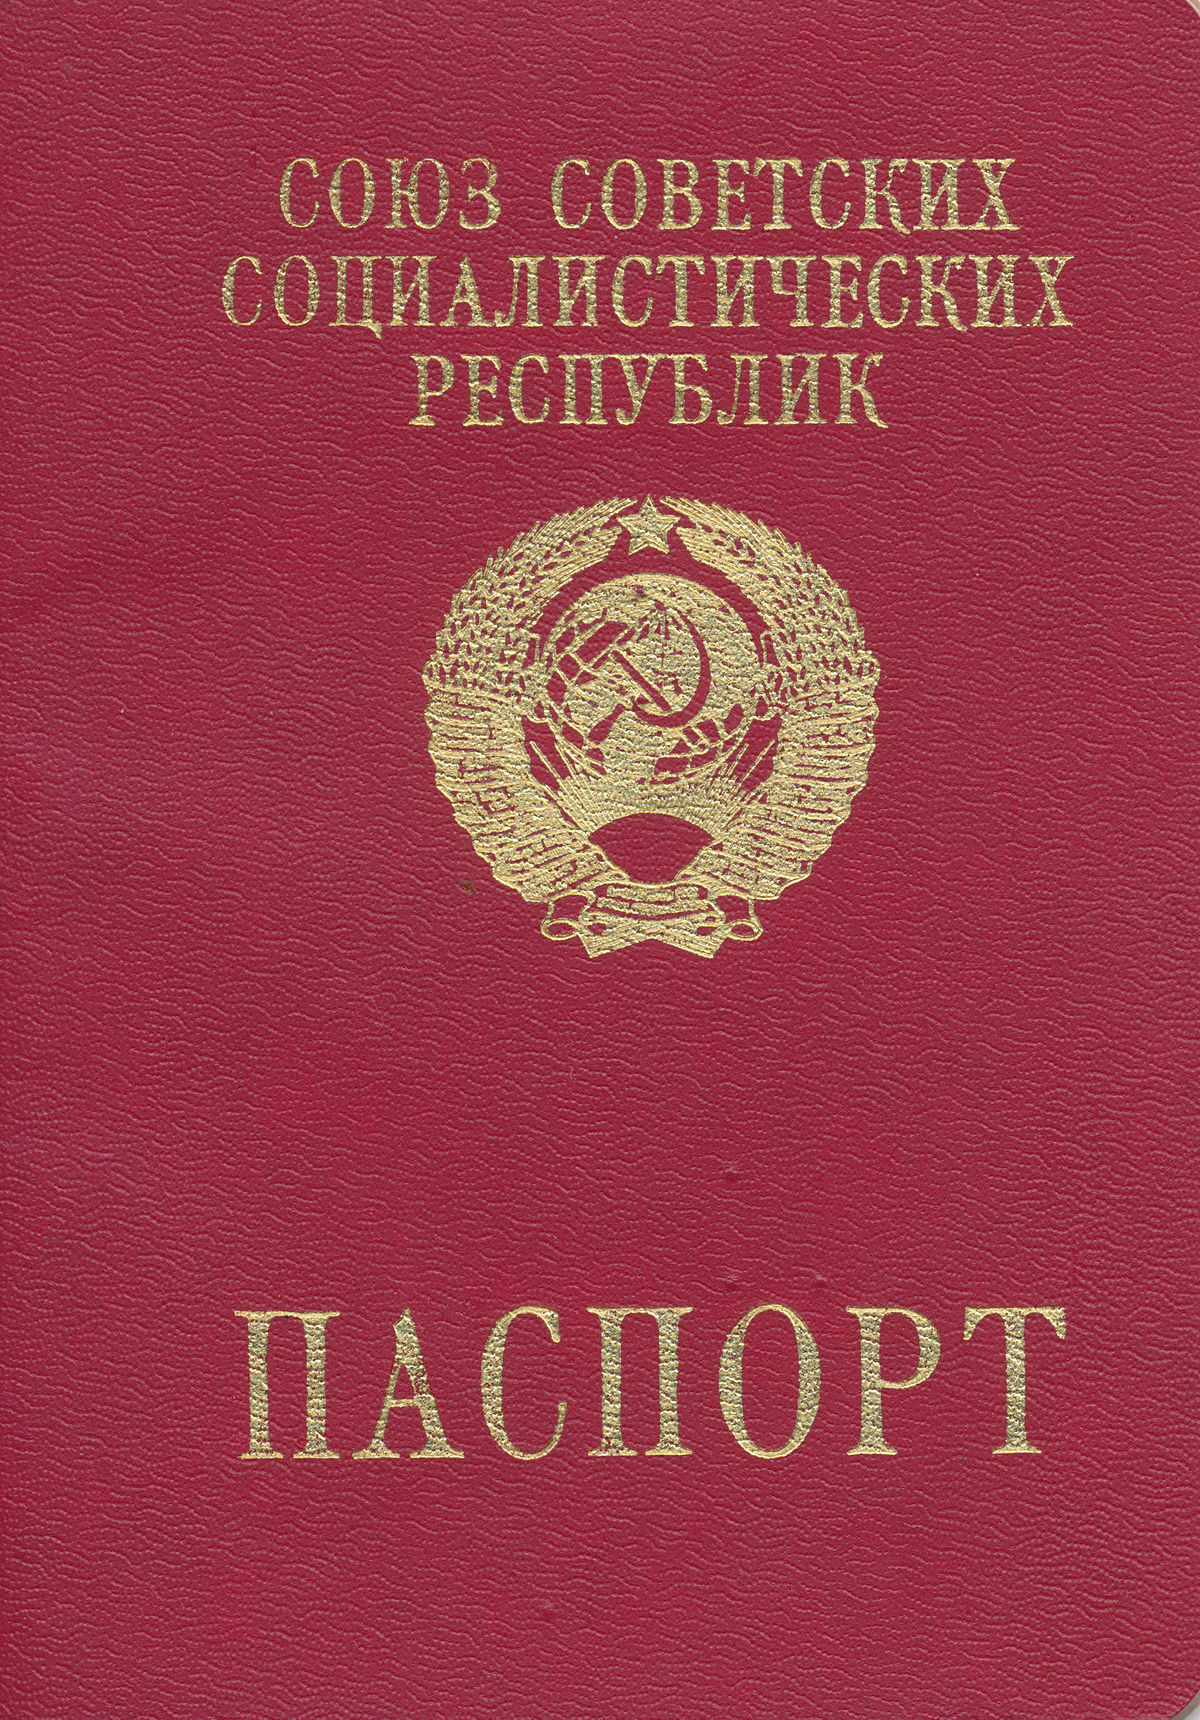 Soviet Union passport - Wikipedia